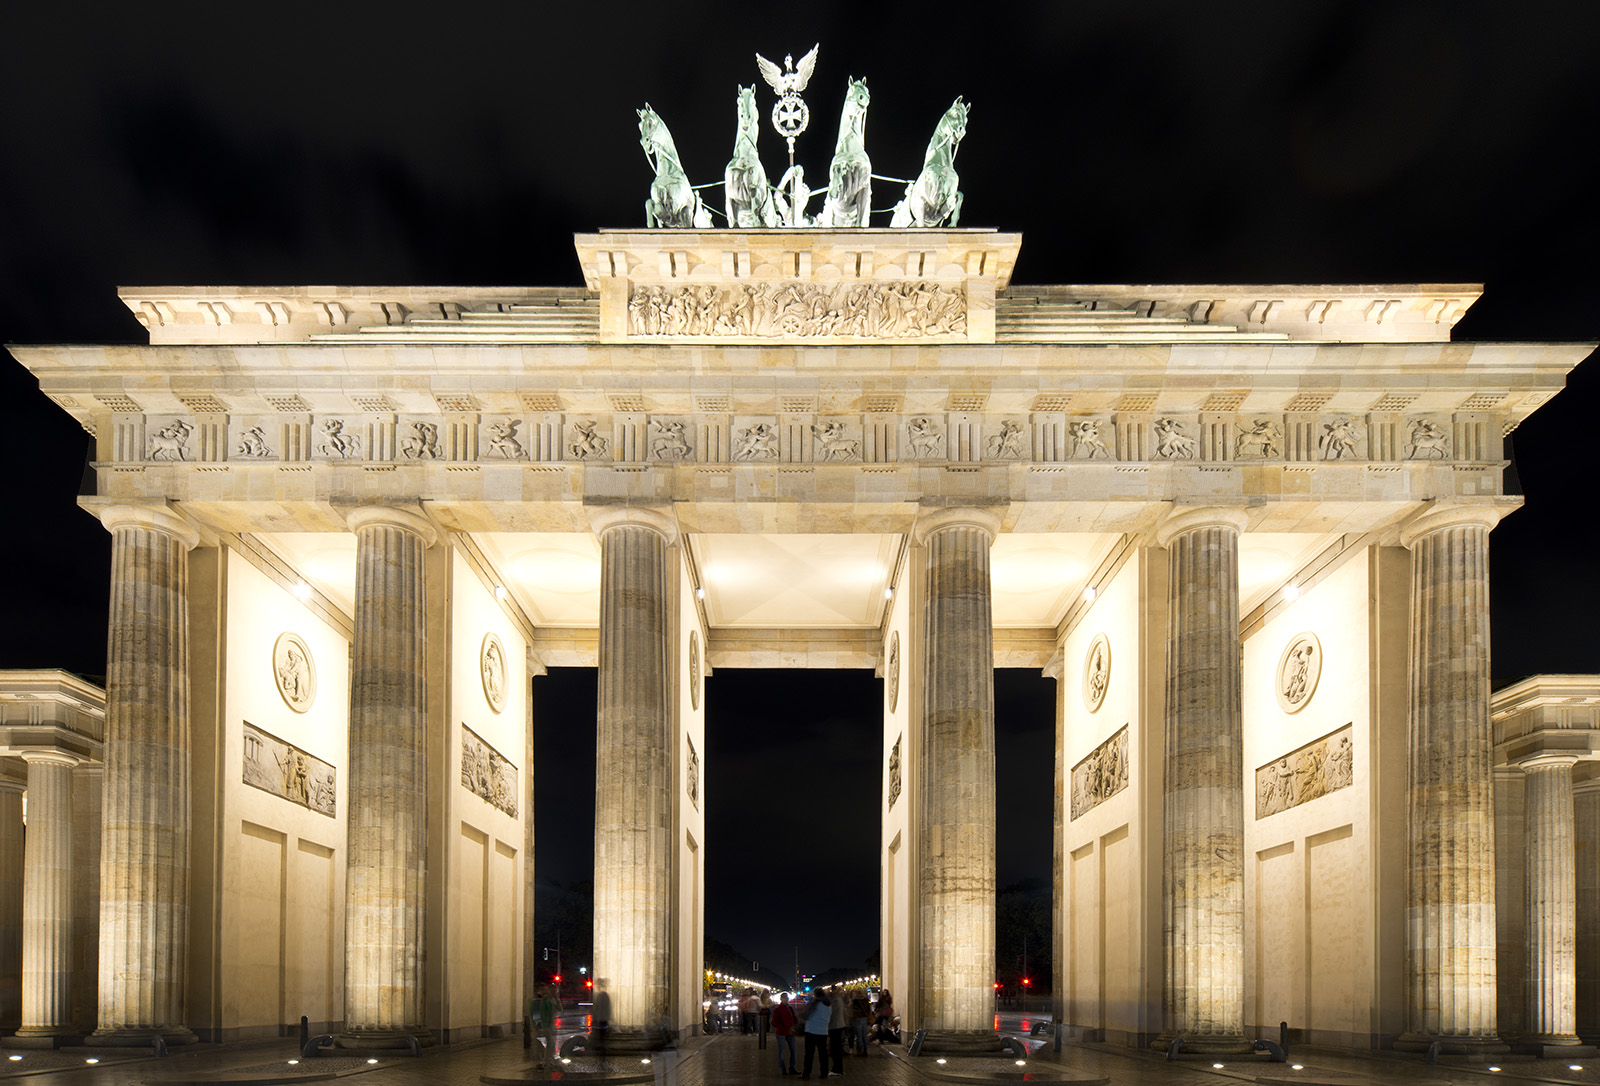 Check Out The Historical Brandenburg Gate In Germany